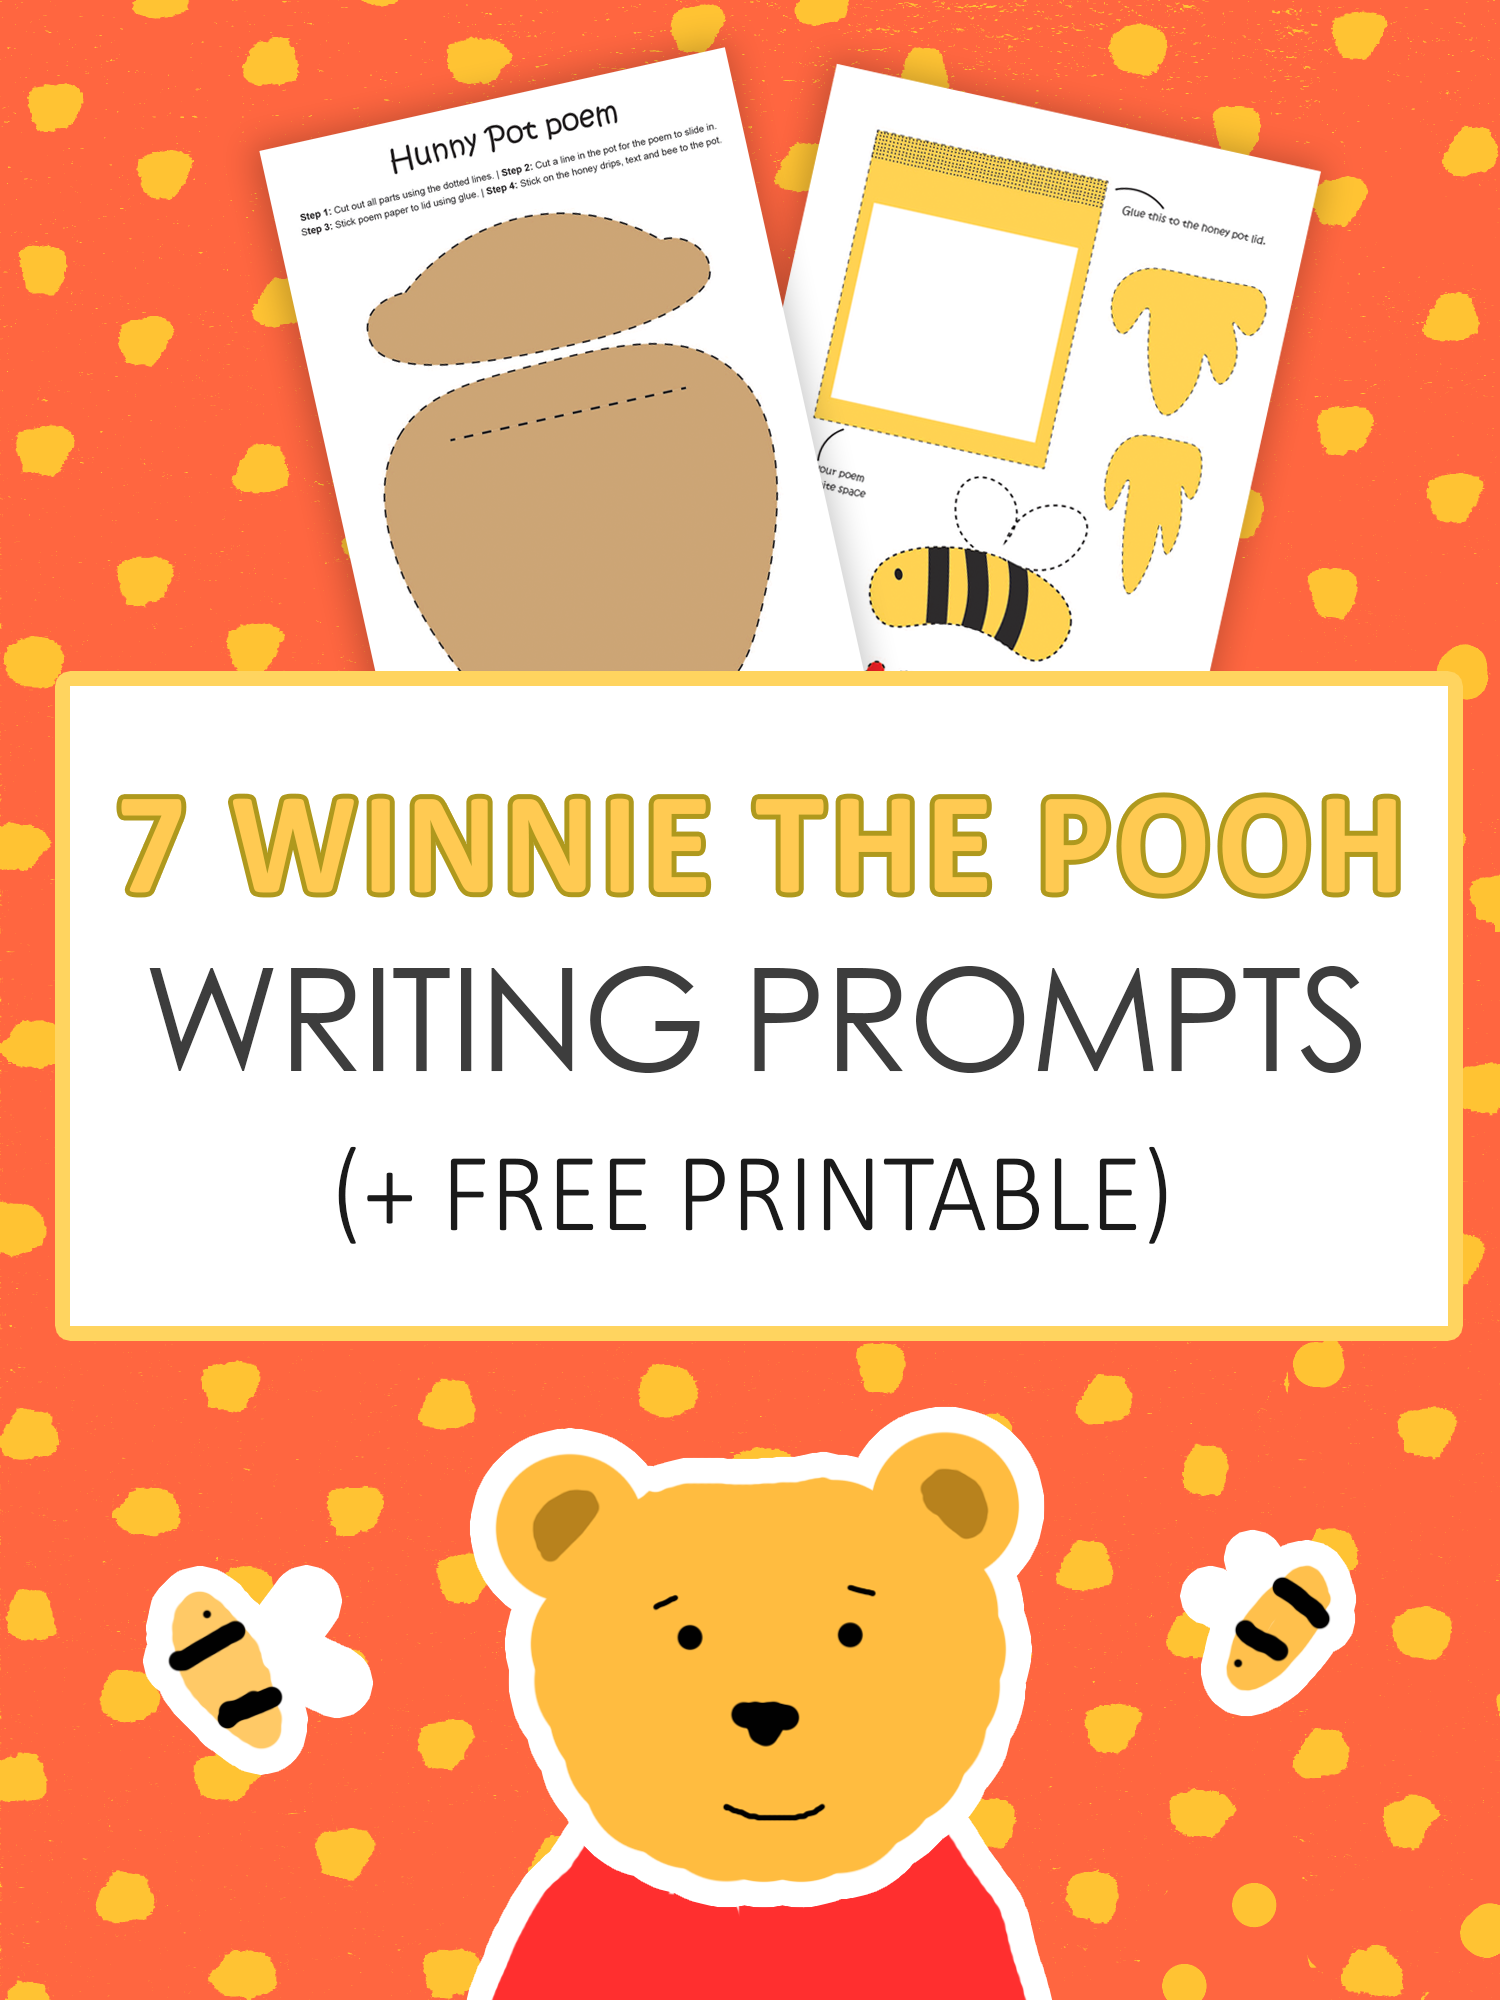 7 Winnie The Pooh Writing Prompts